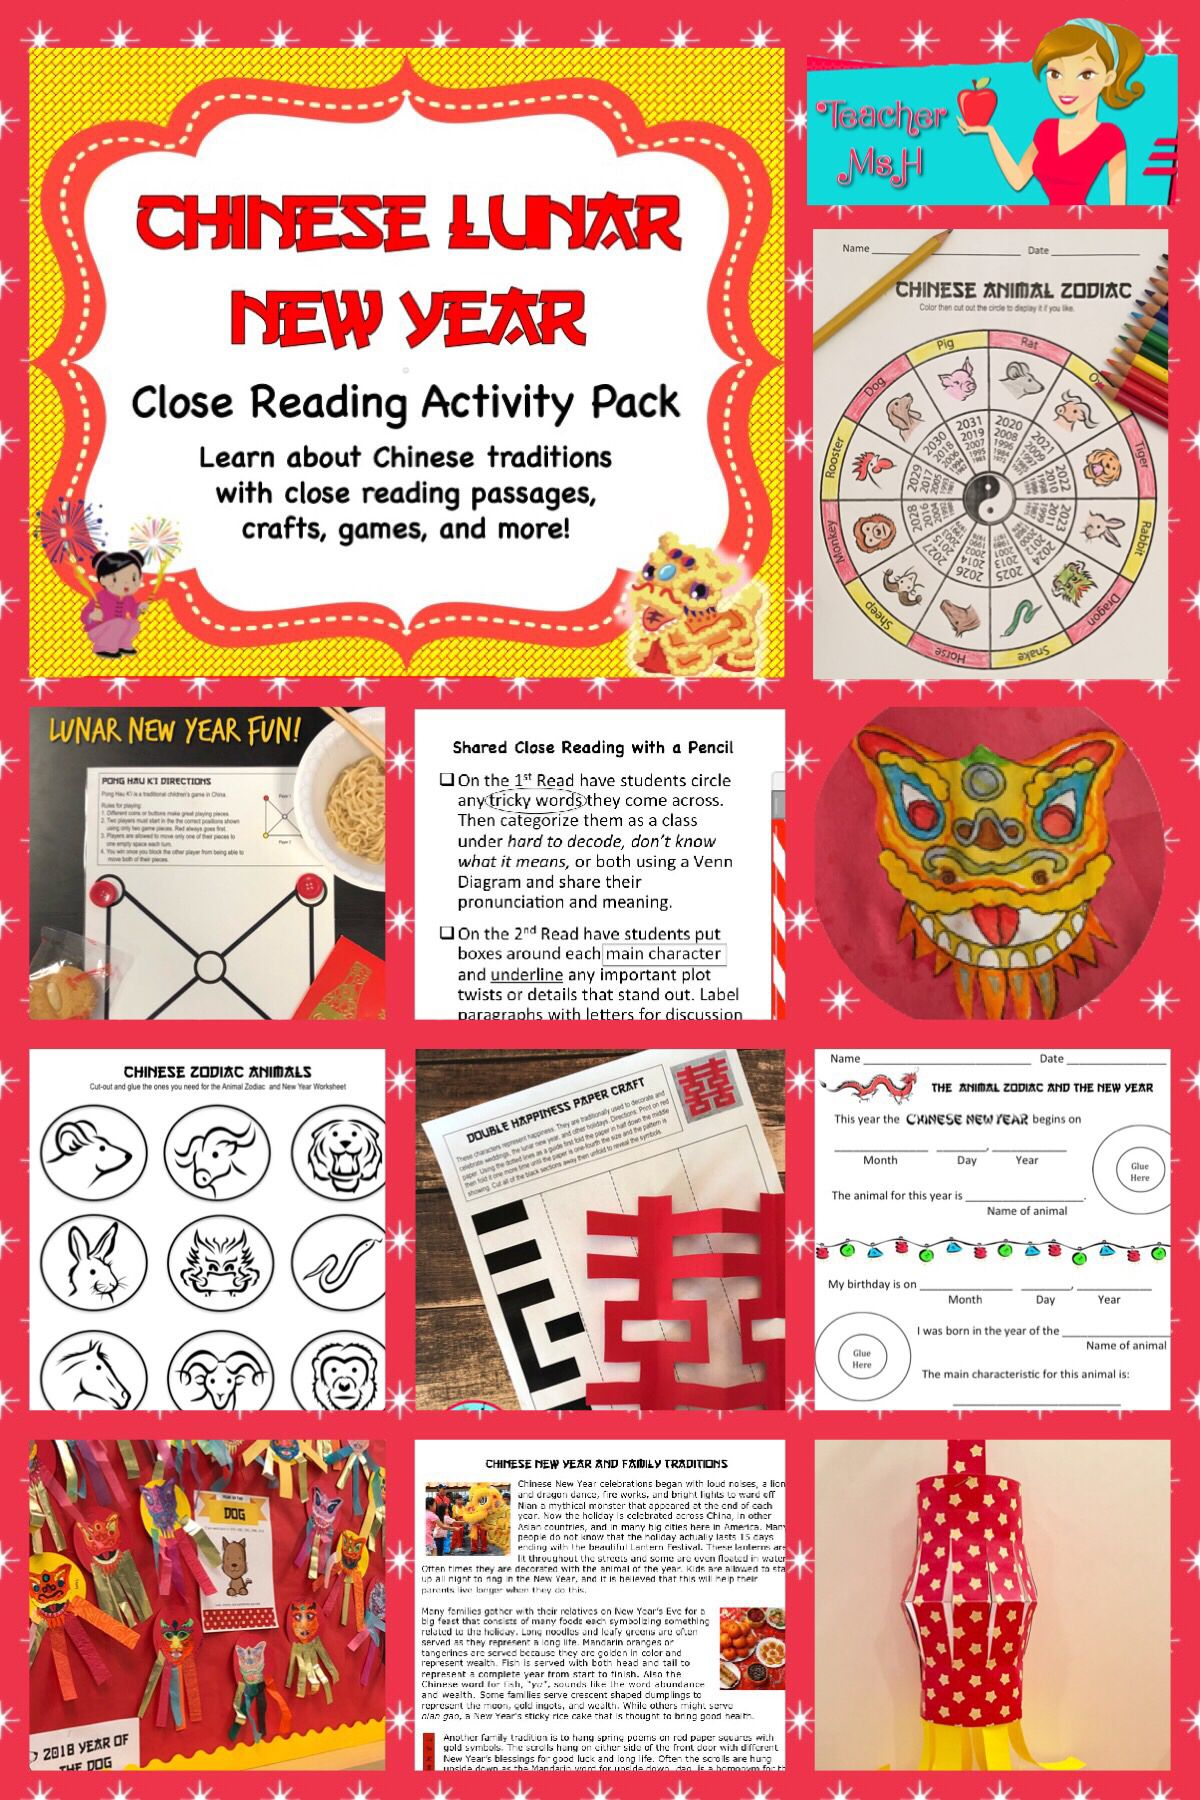 Chinese New Year 2020 Lunar New Year Close Reading Crafts Games Activity Pack Activity Pack New Years Traditions Close Reading